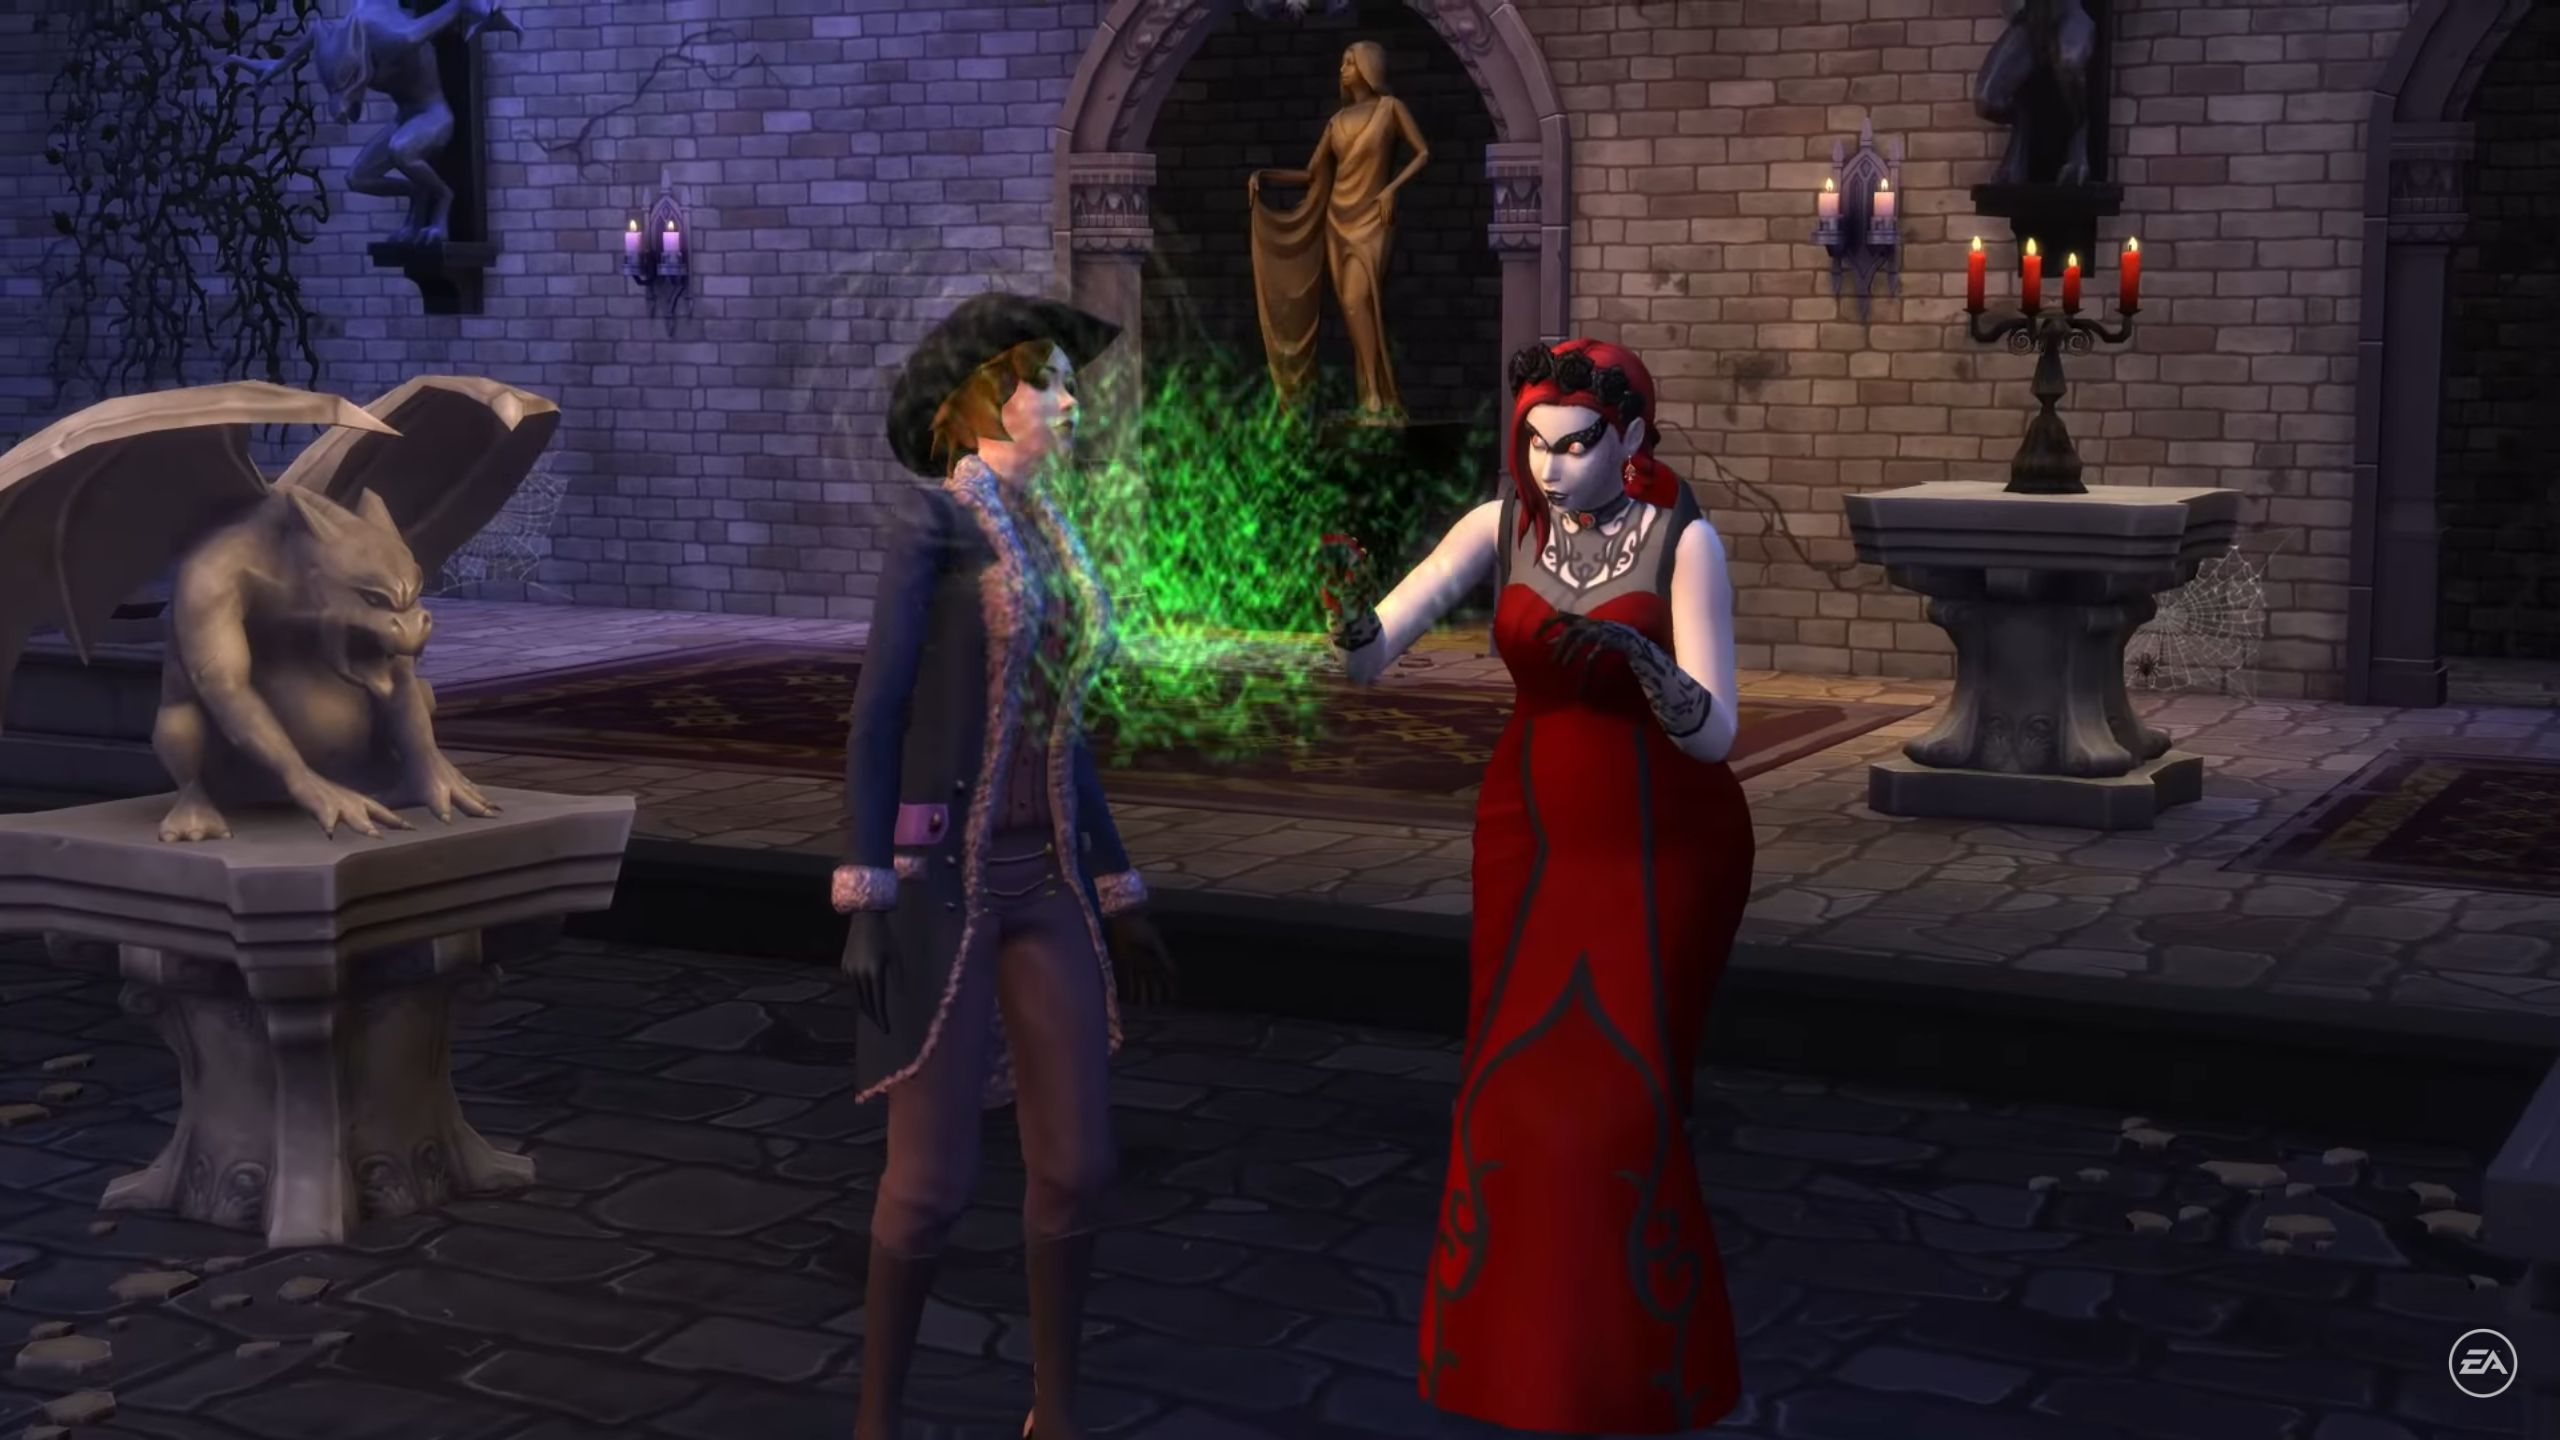 Baby/Toddler Vampires The Sims Forums